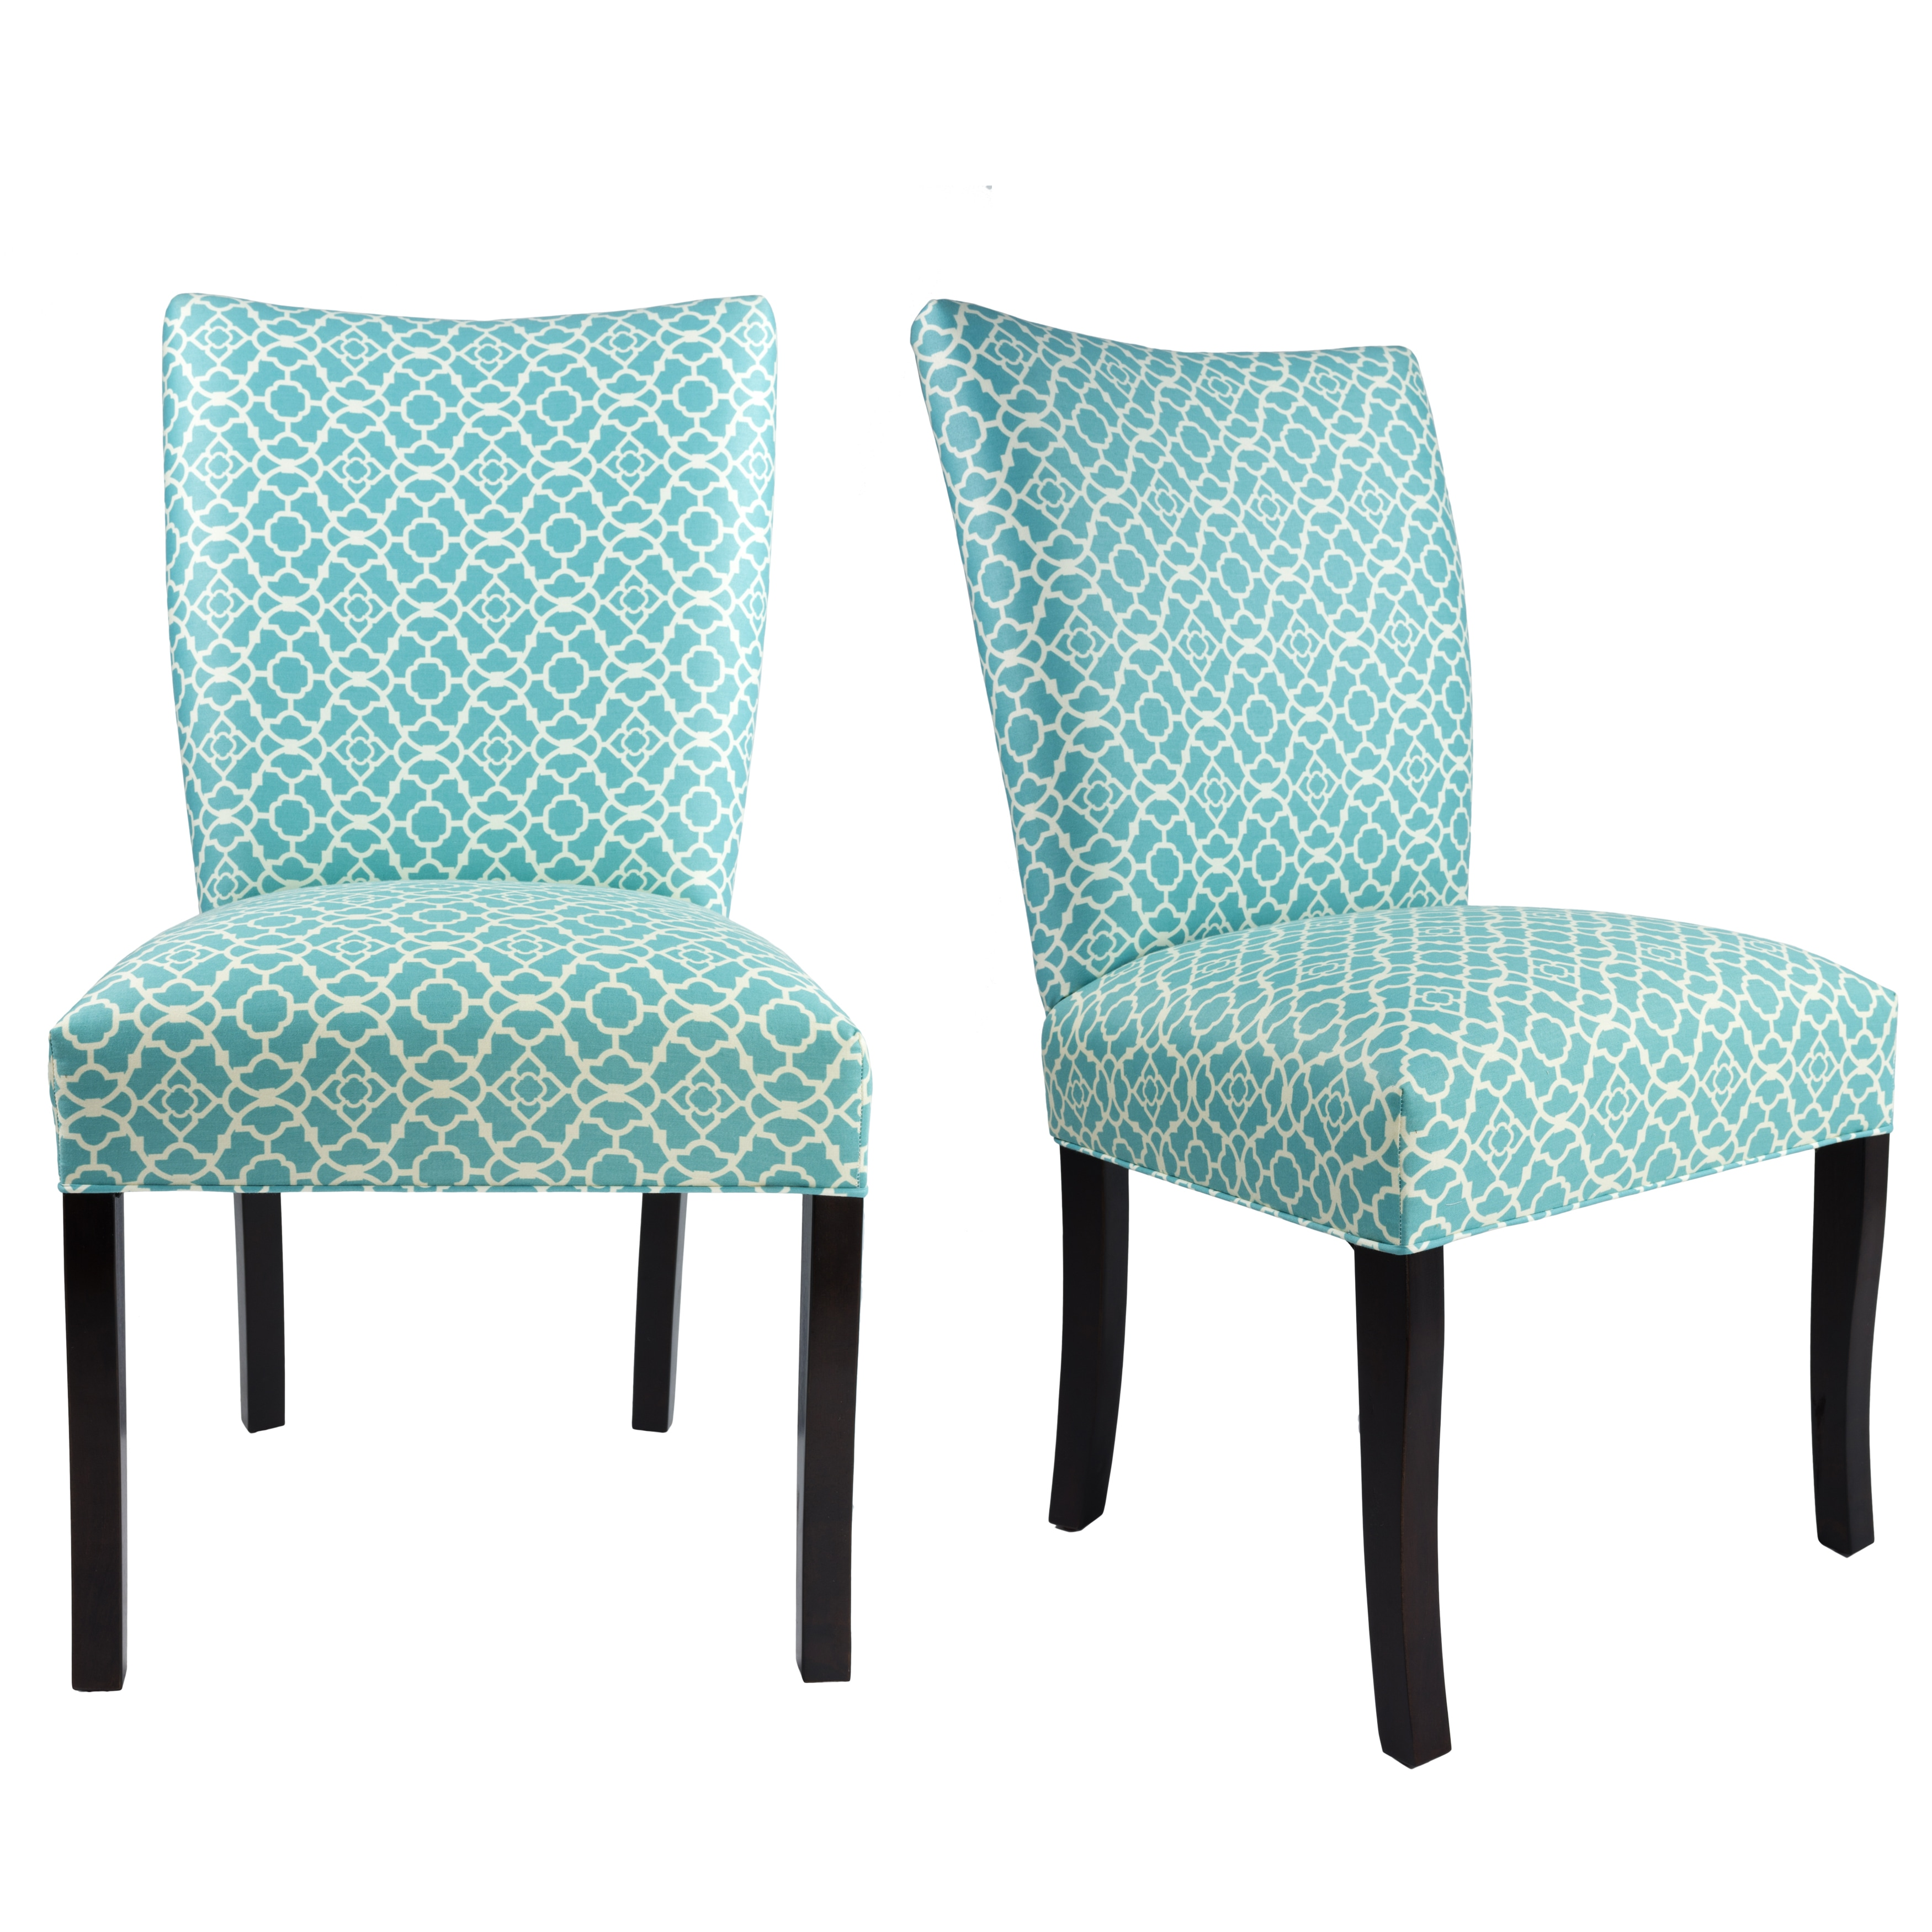 JULIA Collection LOVELY Upholstered Modern Dining Room Chairs, Side Chair,  Espresso legs (Set of 2)